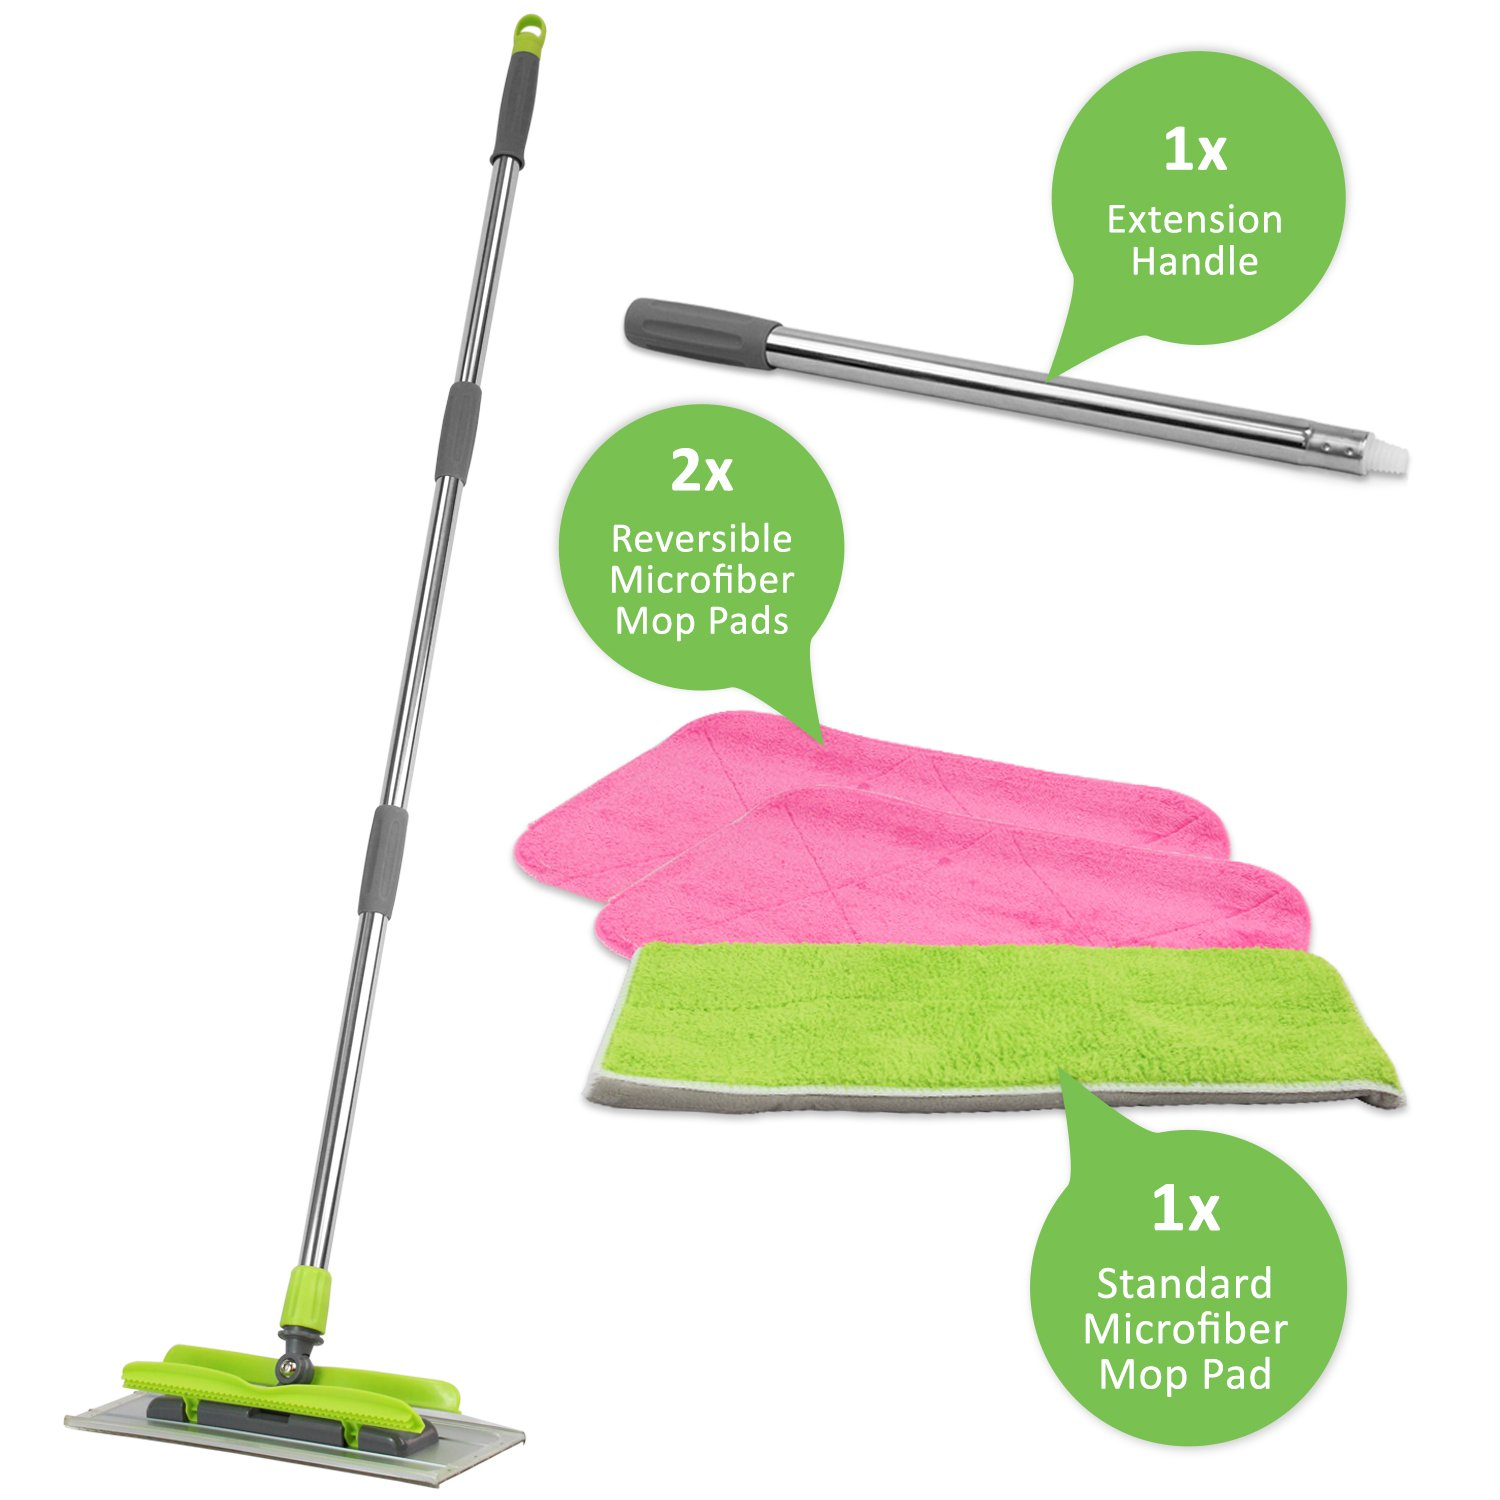 LINKYO Microfiber Hardwood Floor Mop - 3 Reusable Flat Mop Pads and Extension Included, for Wet or Dry Floor Cleaning by LINKYO (Image #9)